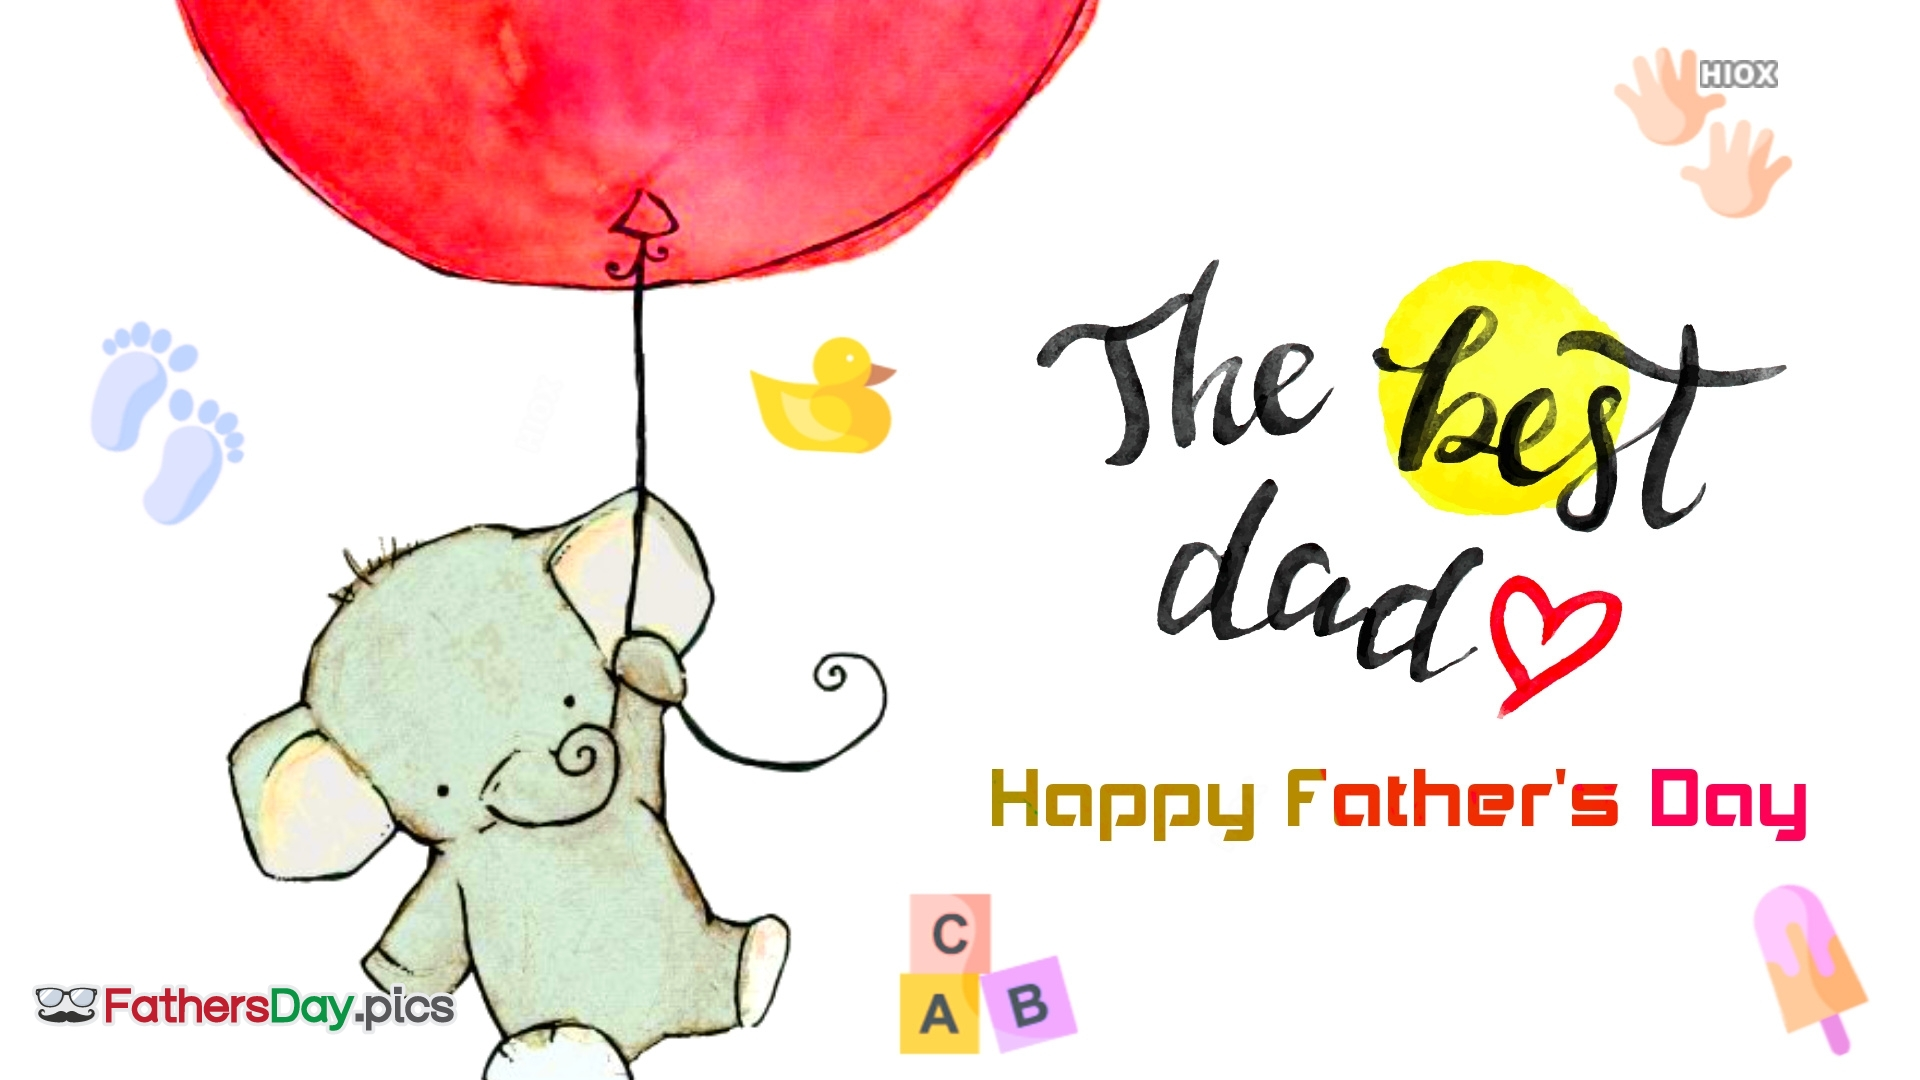 Fathers Day Greetings Card